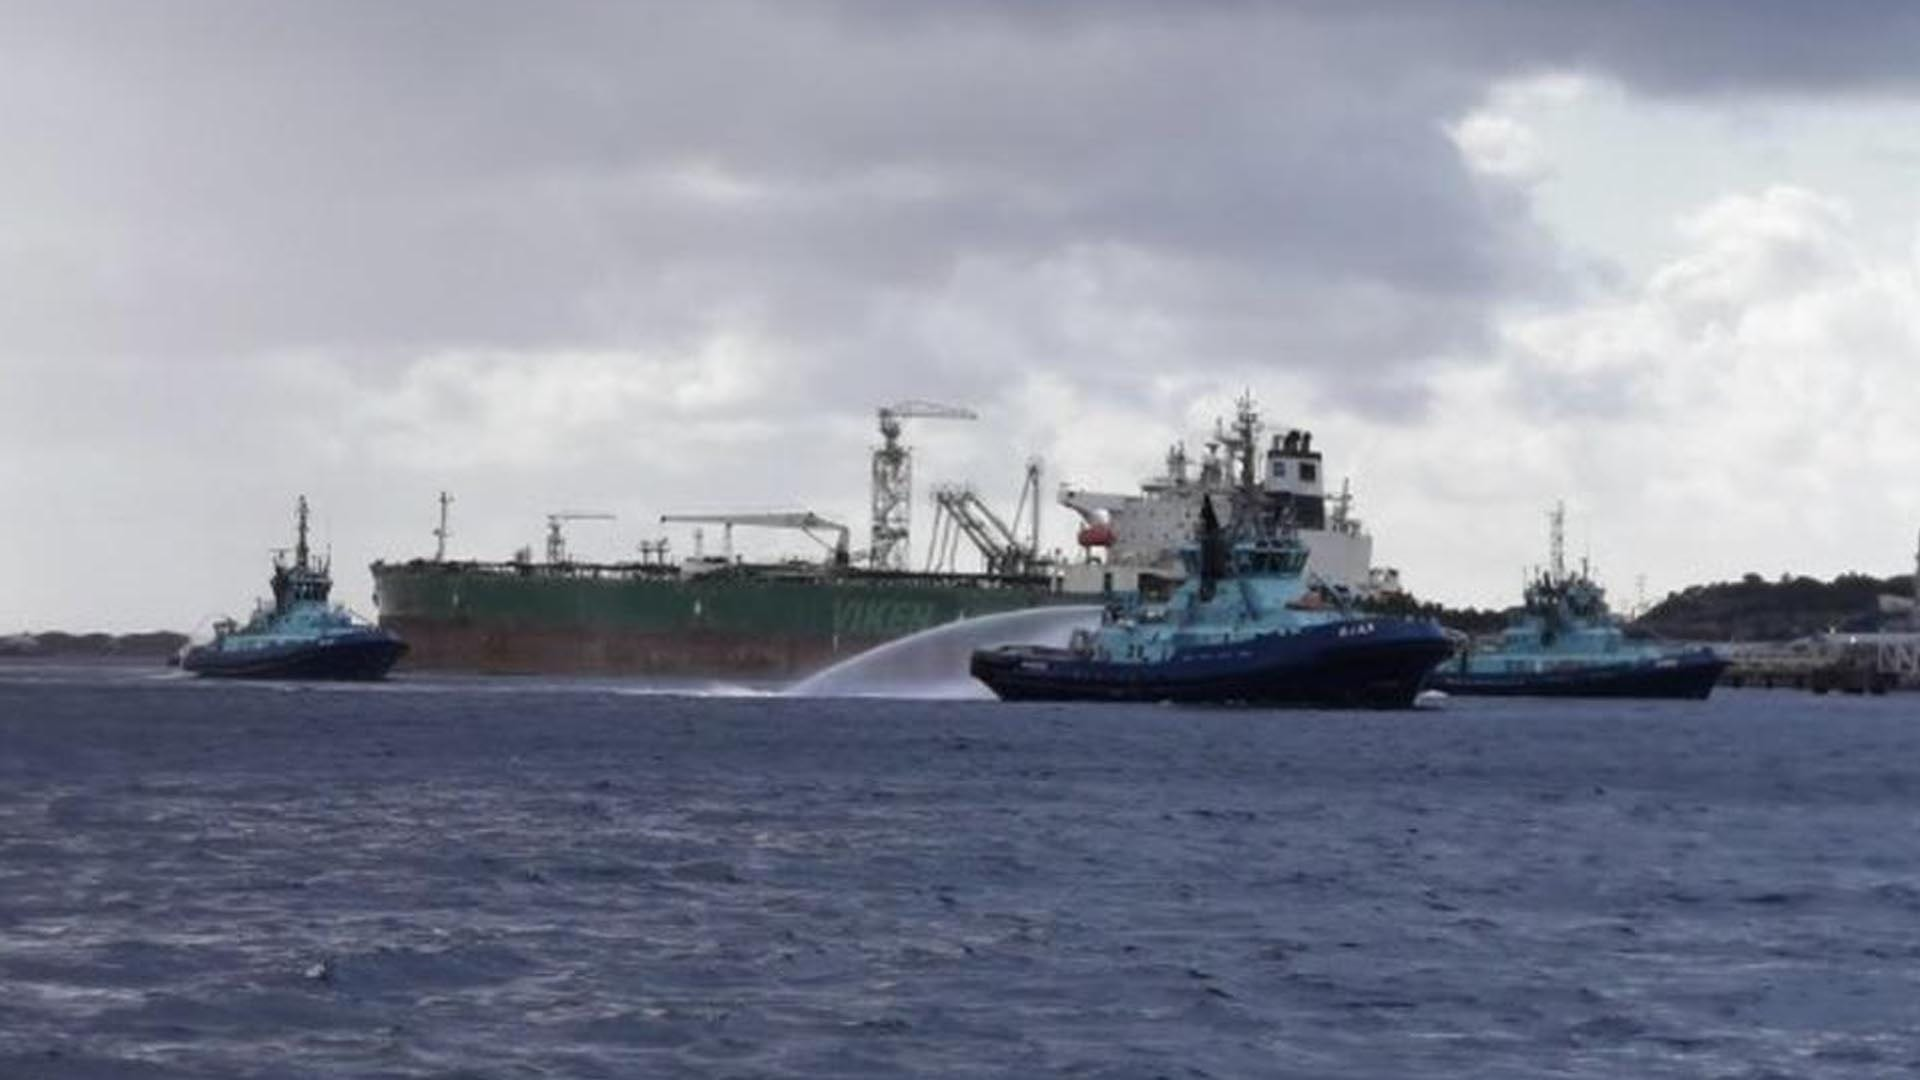 Fire Erupts aboard Tanker at Norway's Sture Terminal